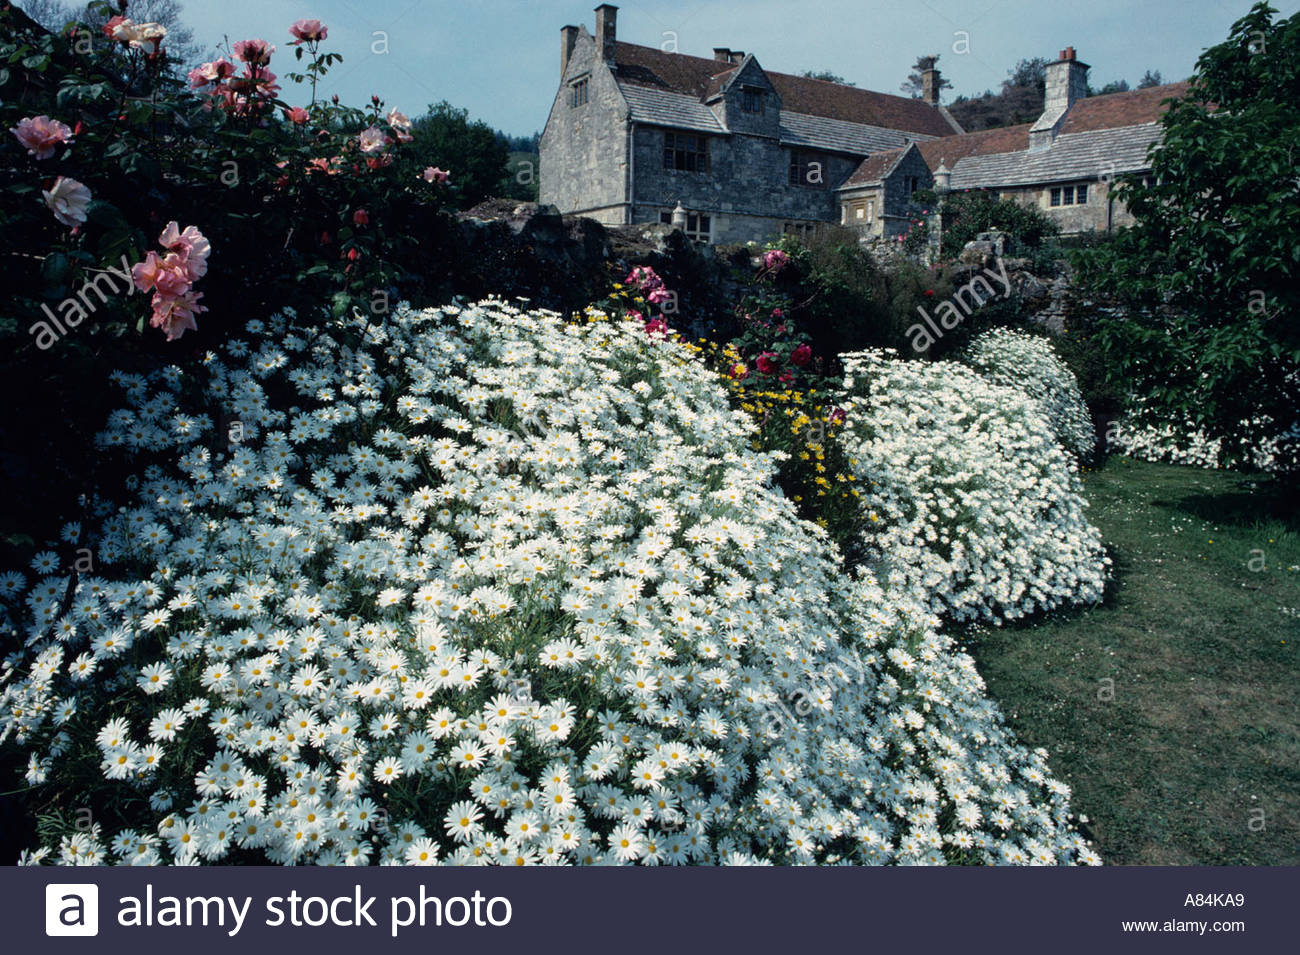 Glorious gardens at Motiscombe House opened weekly to the public by the National Trust, UK - Stock Image